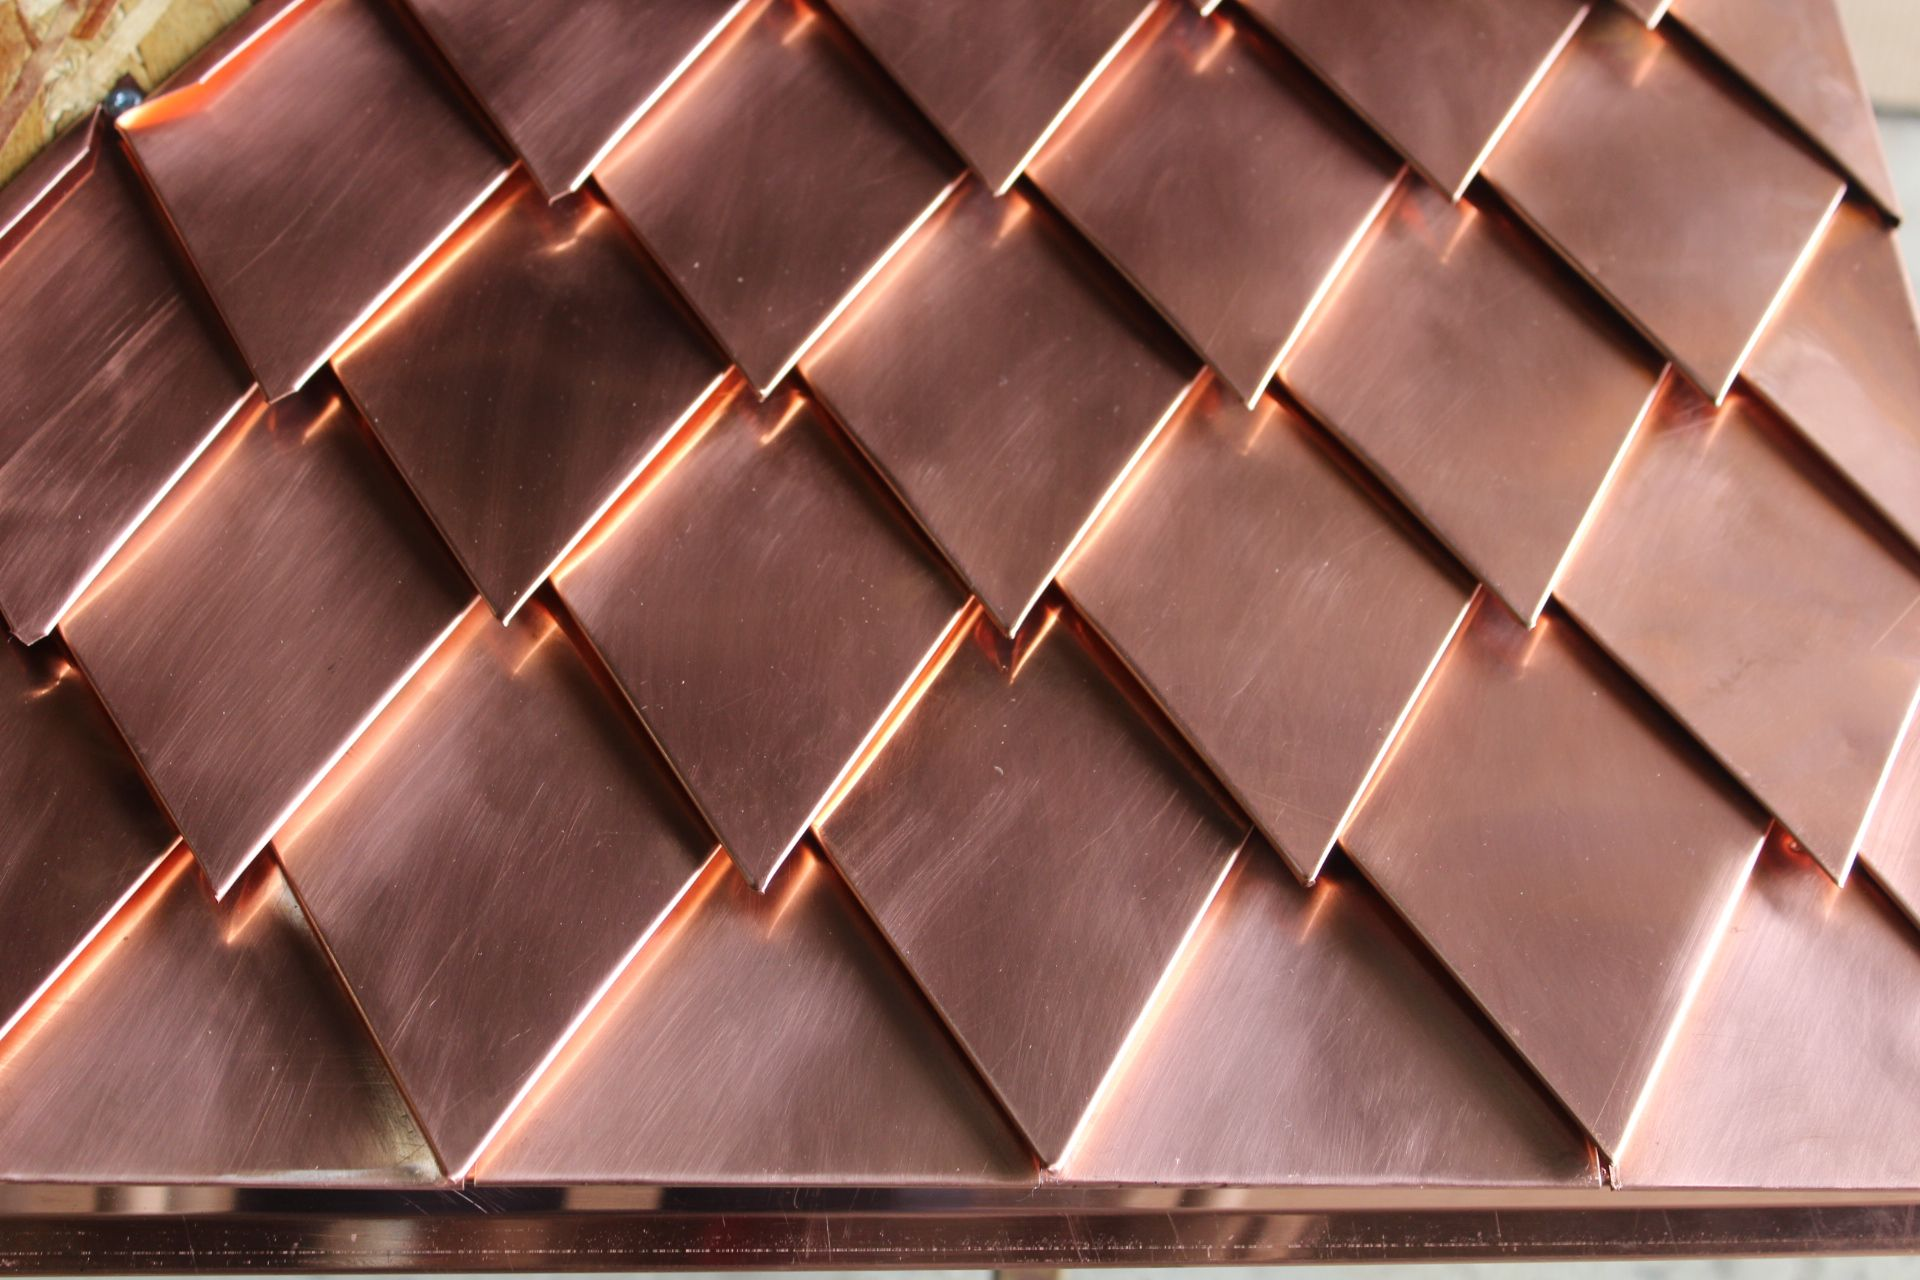 4 X 8 Diamond Shaped Copper Singles Copper Roof Metal Roof Corrugated Metal Roof